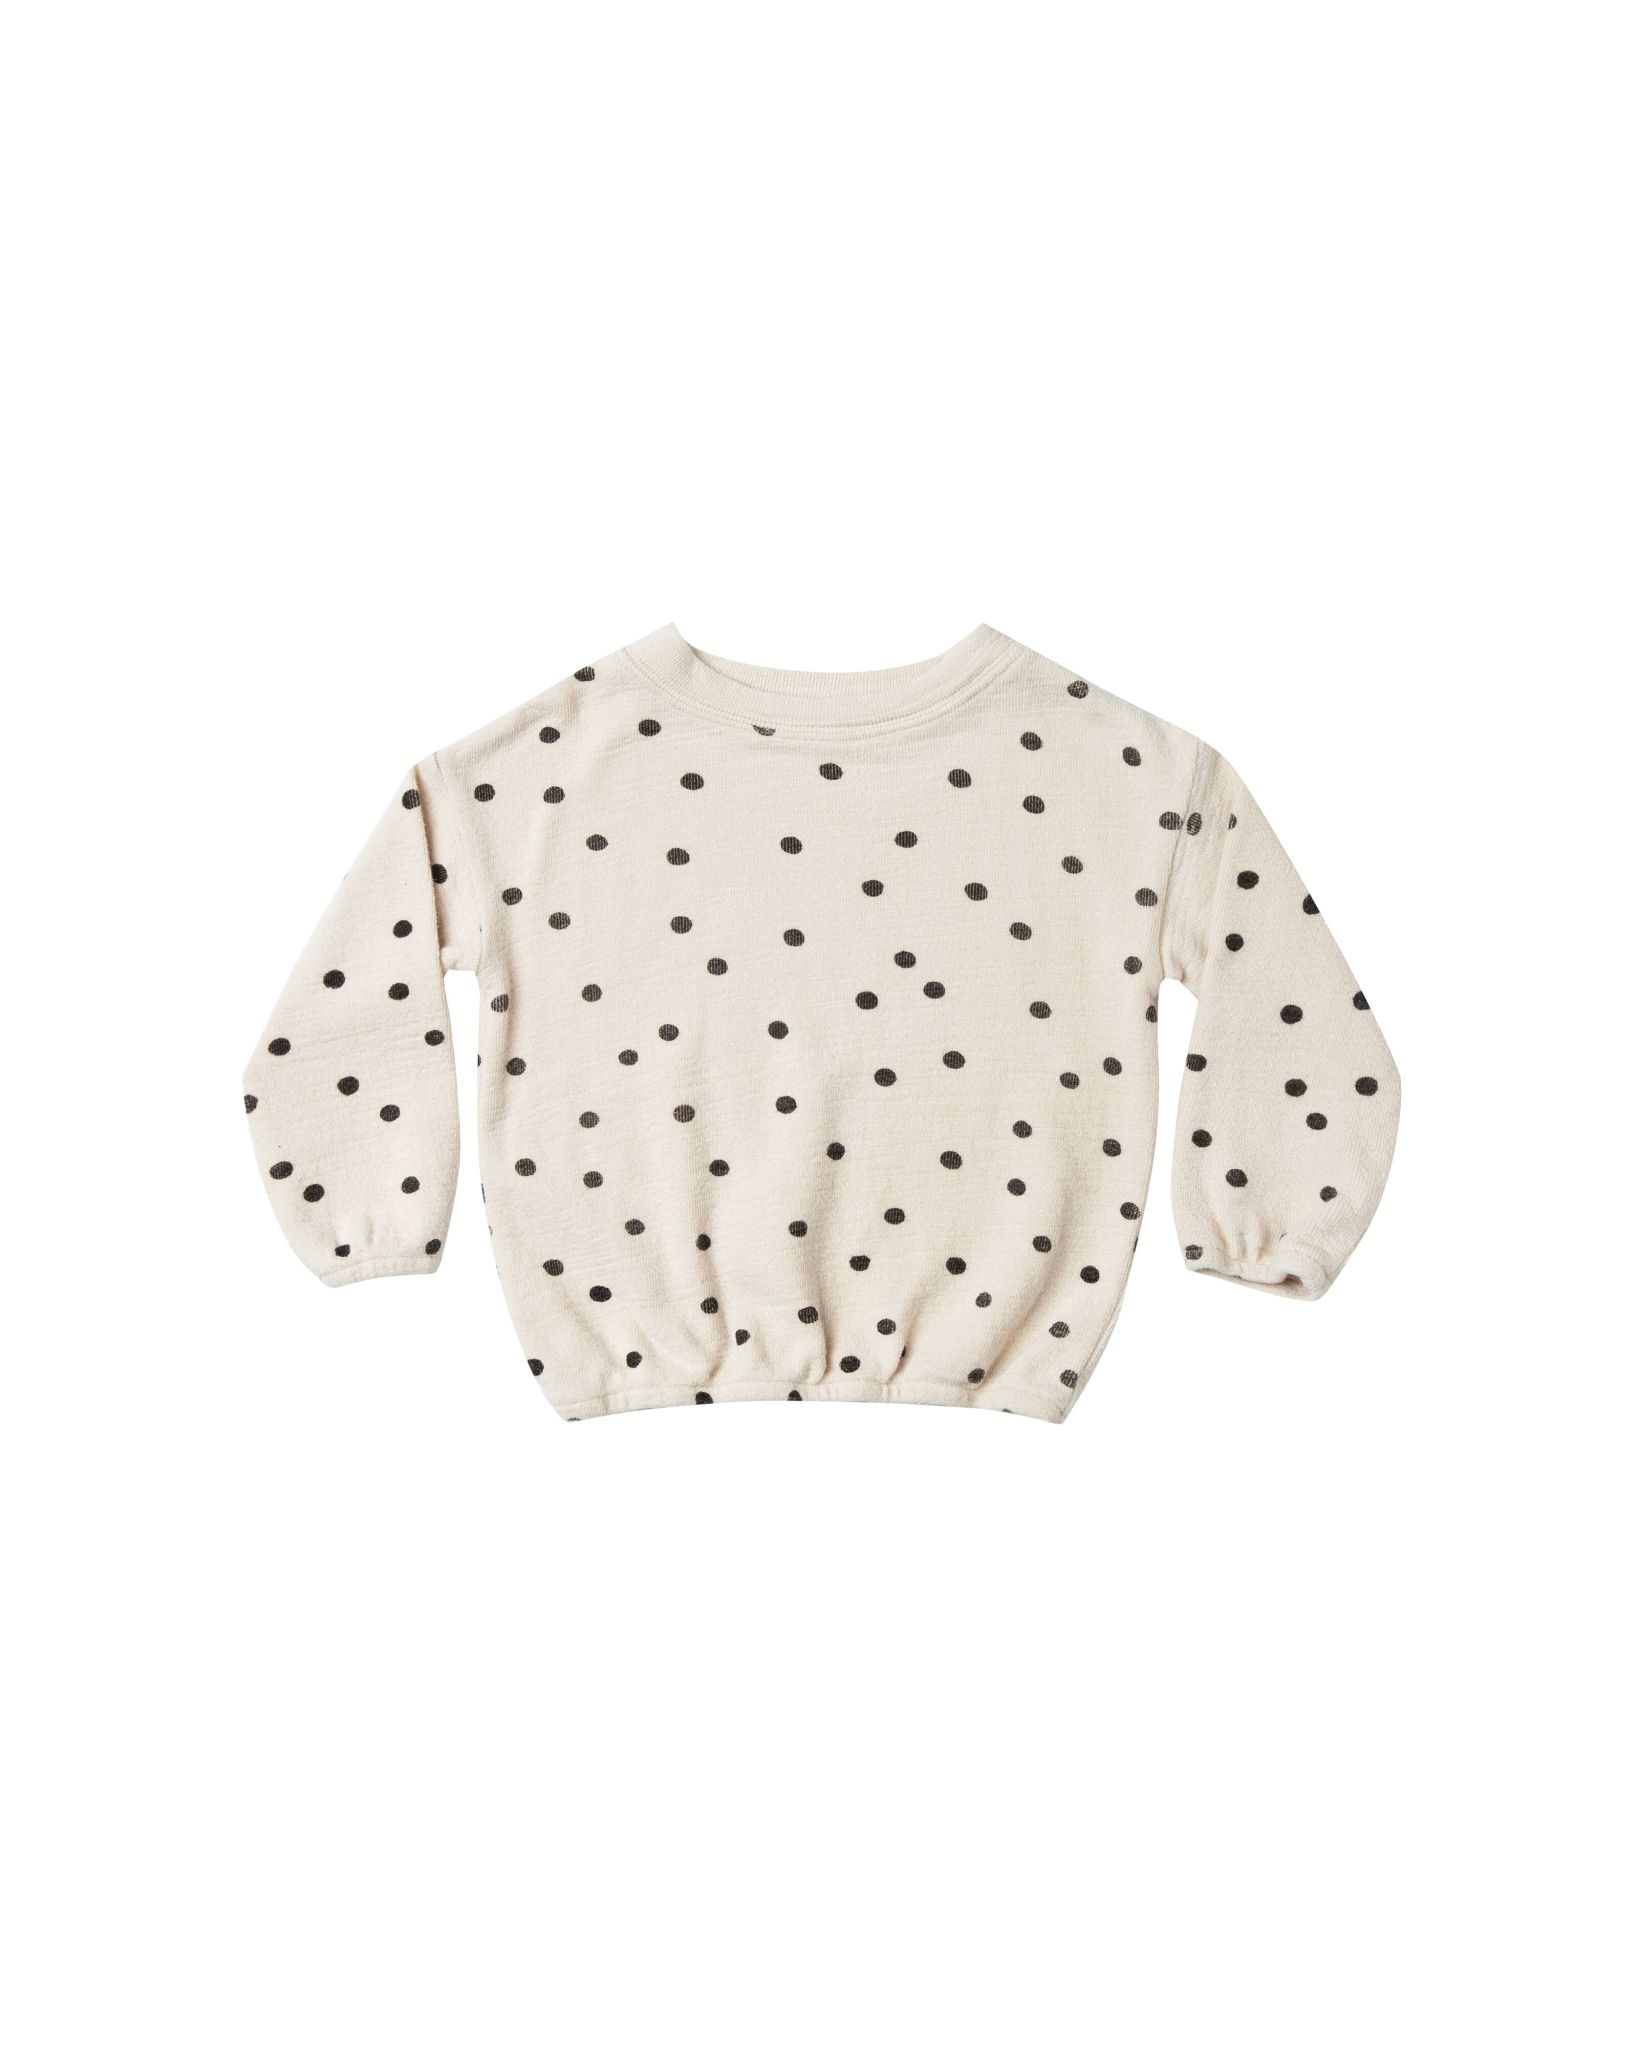 RYLEE AND CRU Dot Baby Pullover Sweater